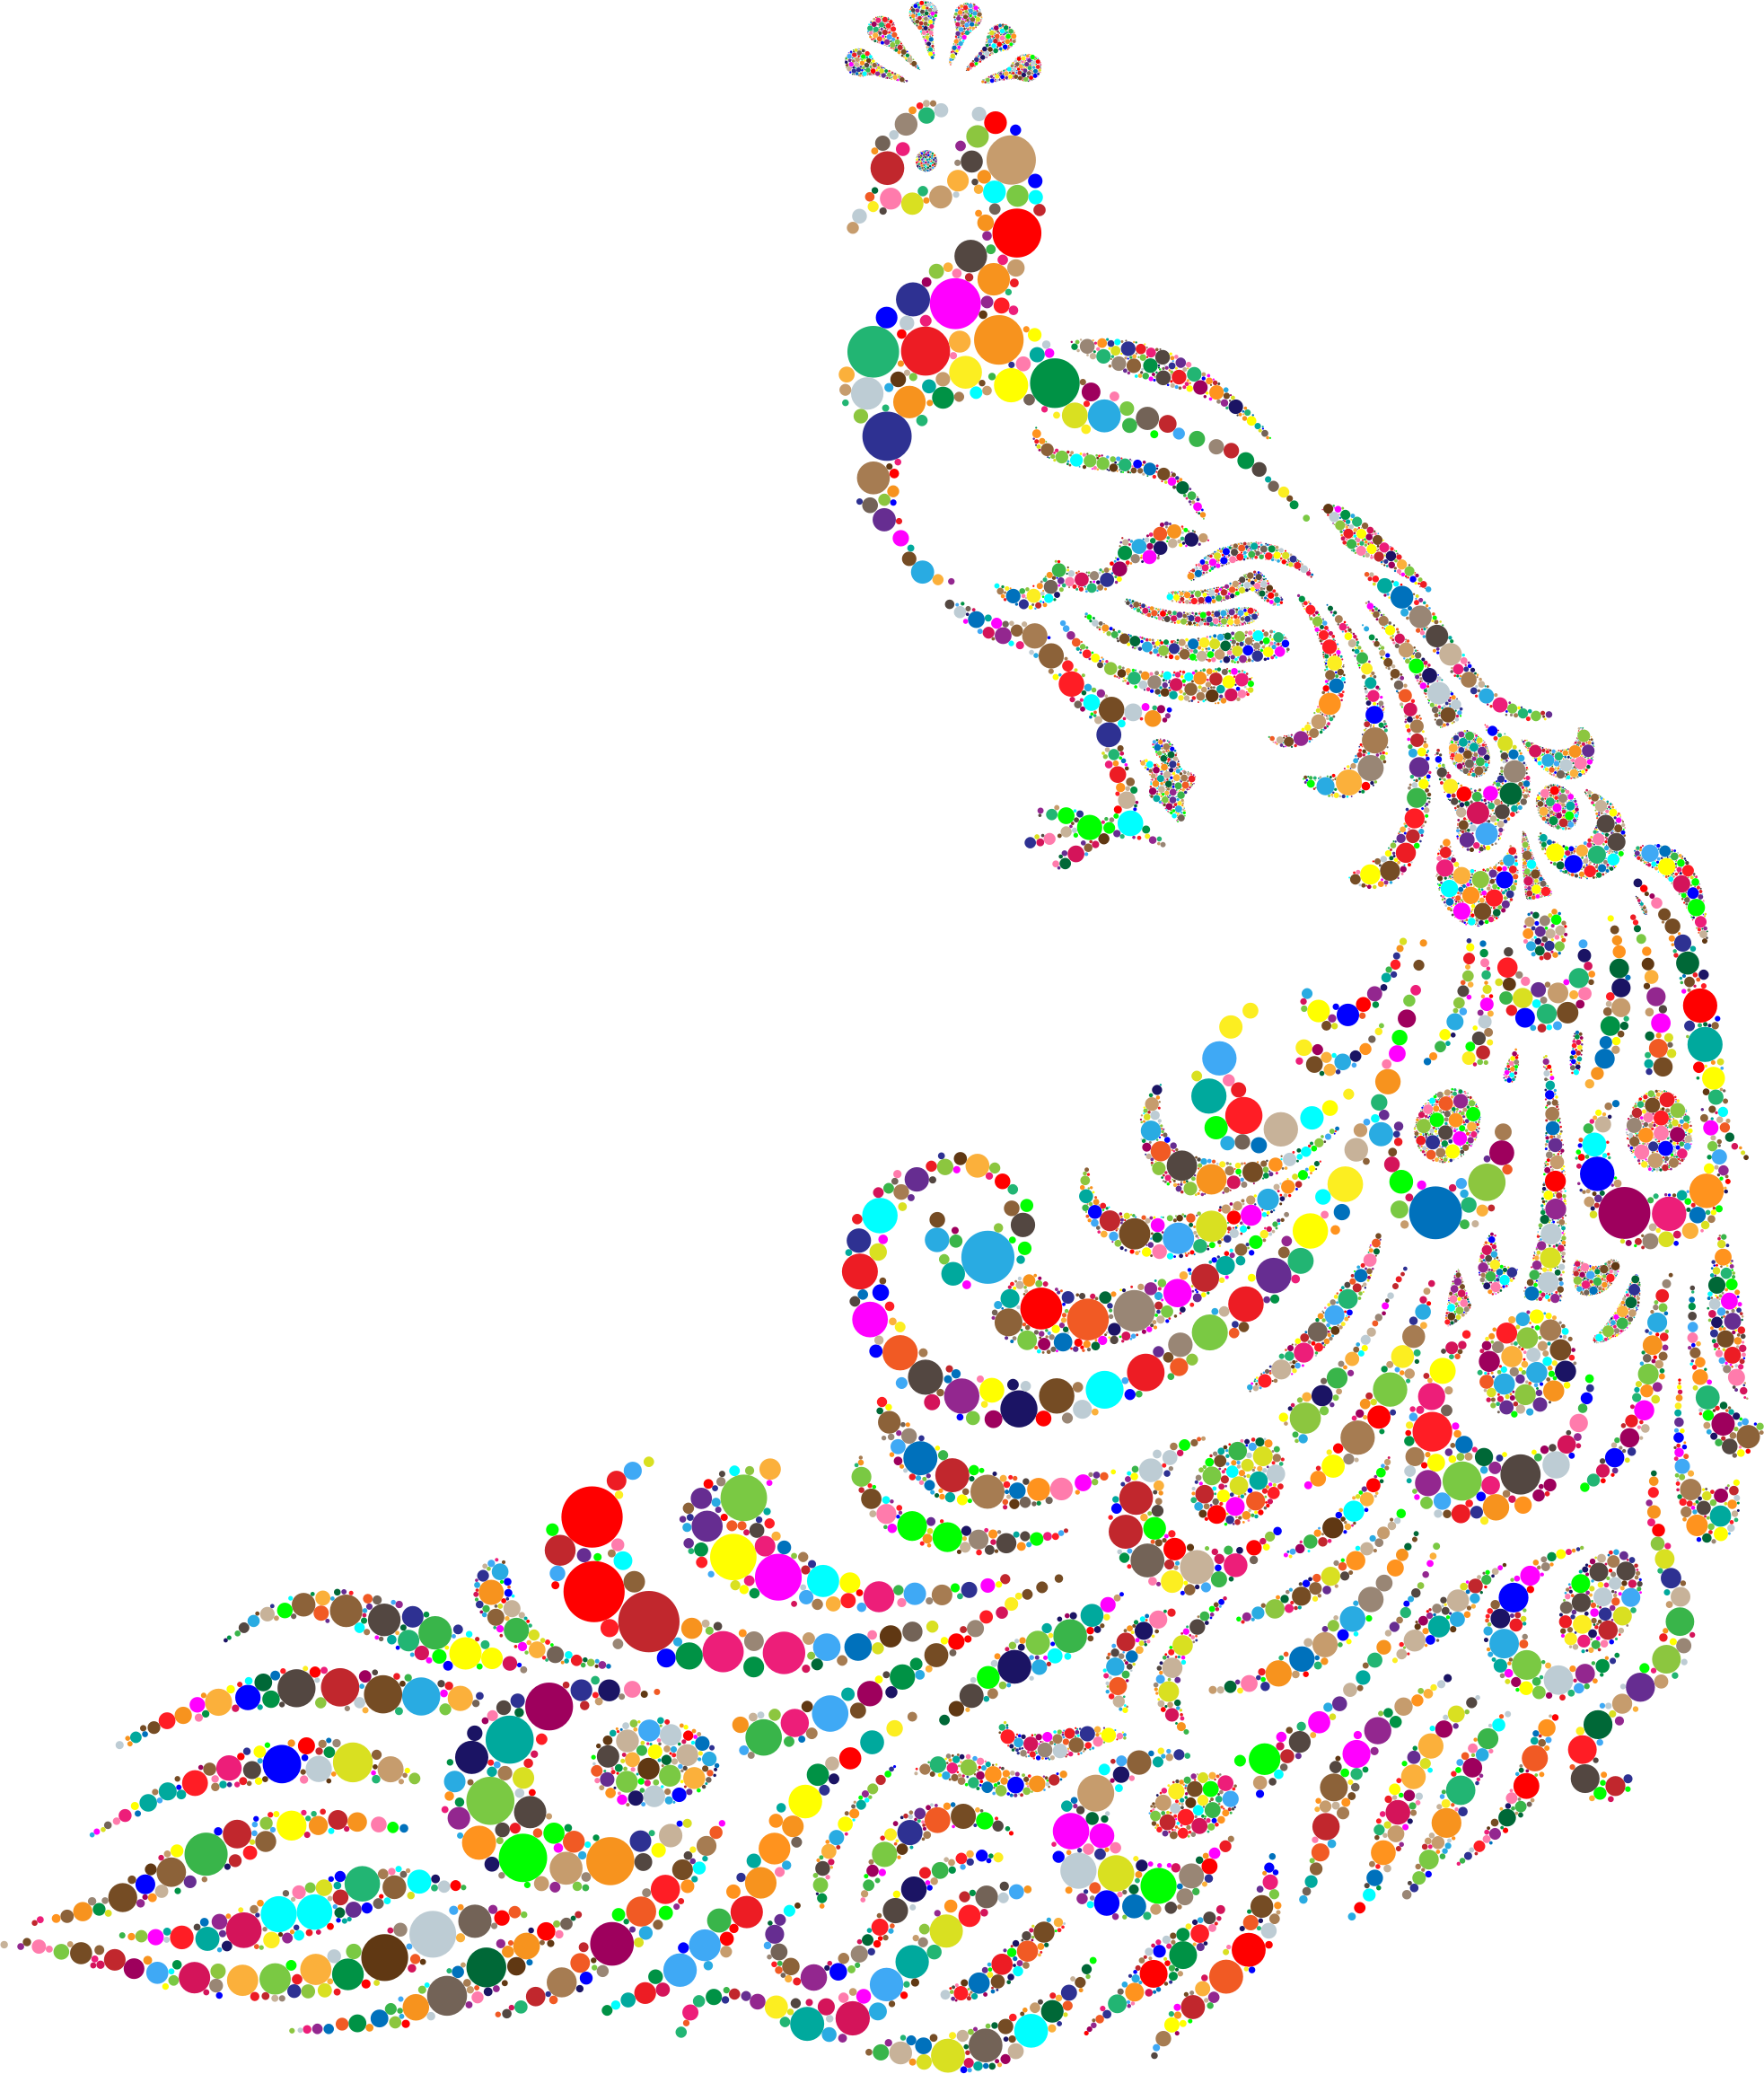 Animals clipart peacock. Colorful circles big image